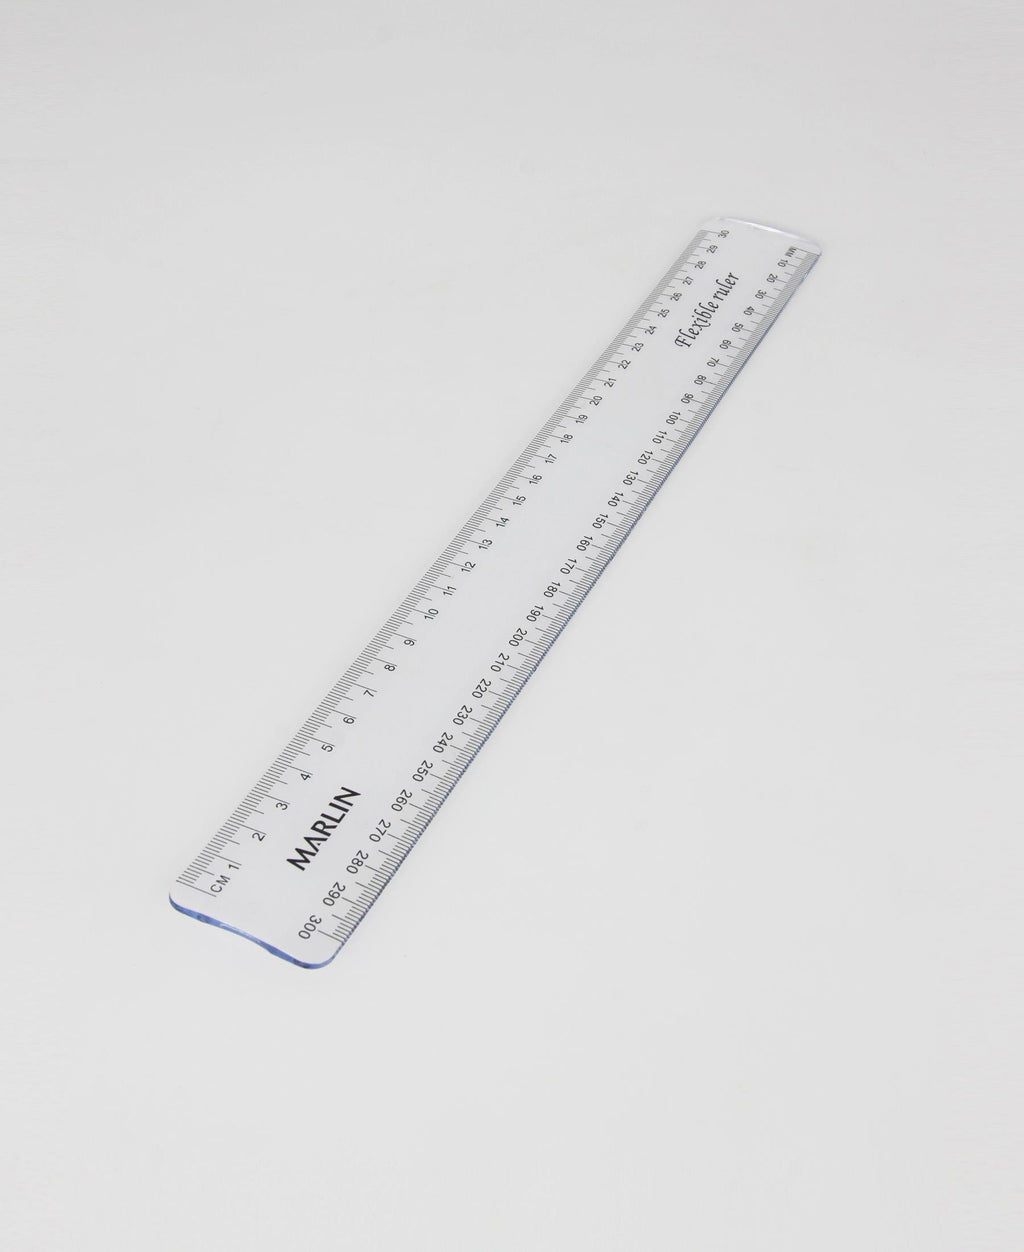 Marlin Flexible Ruler - Clear